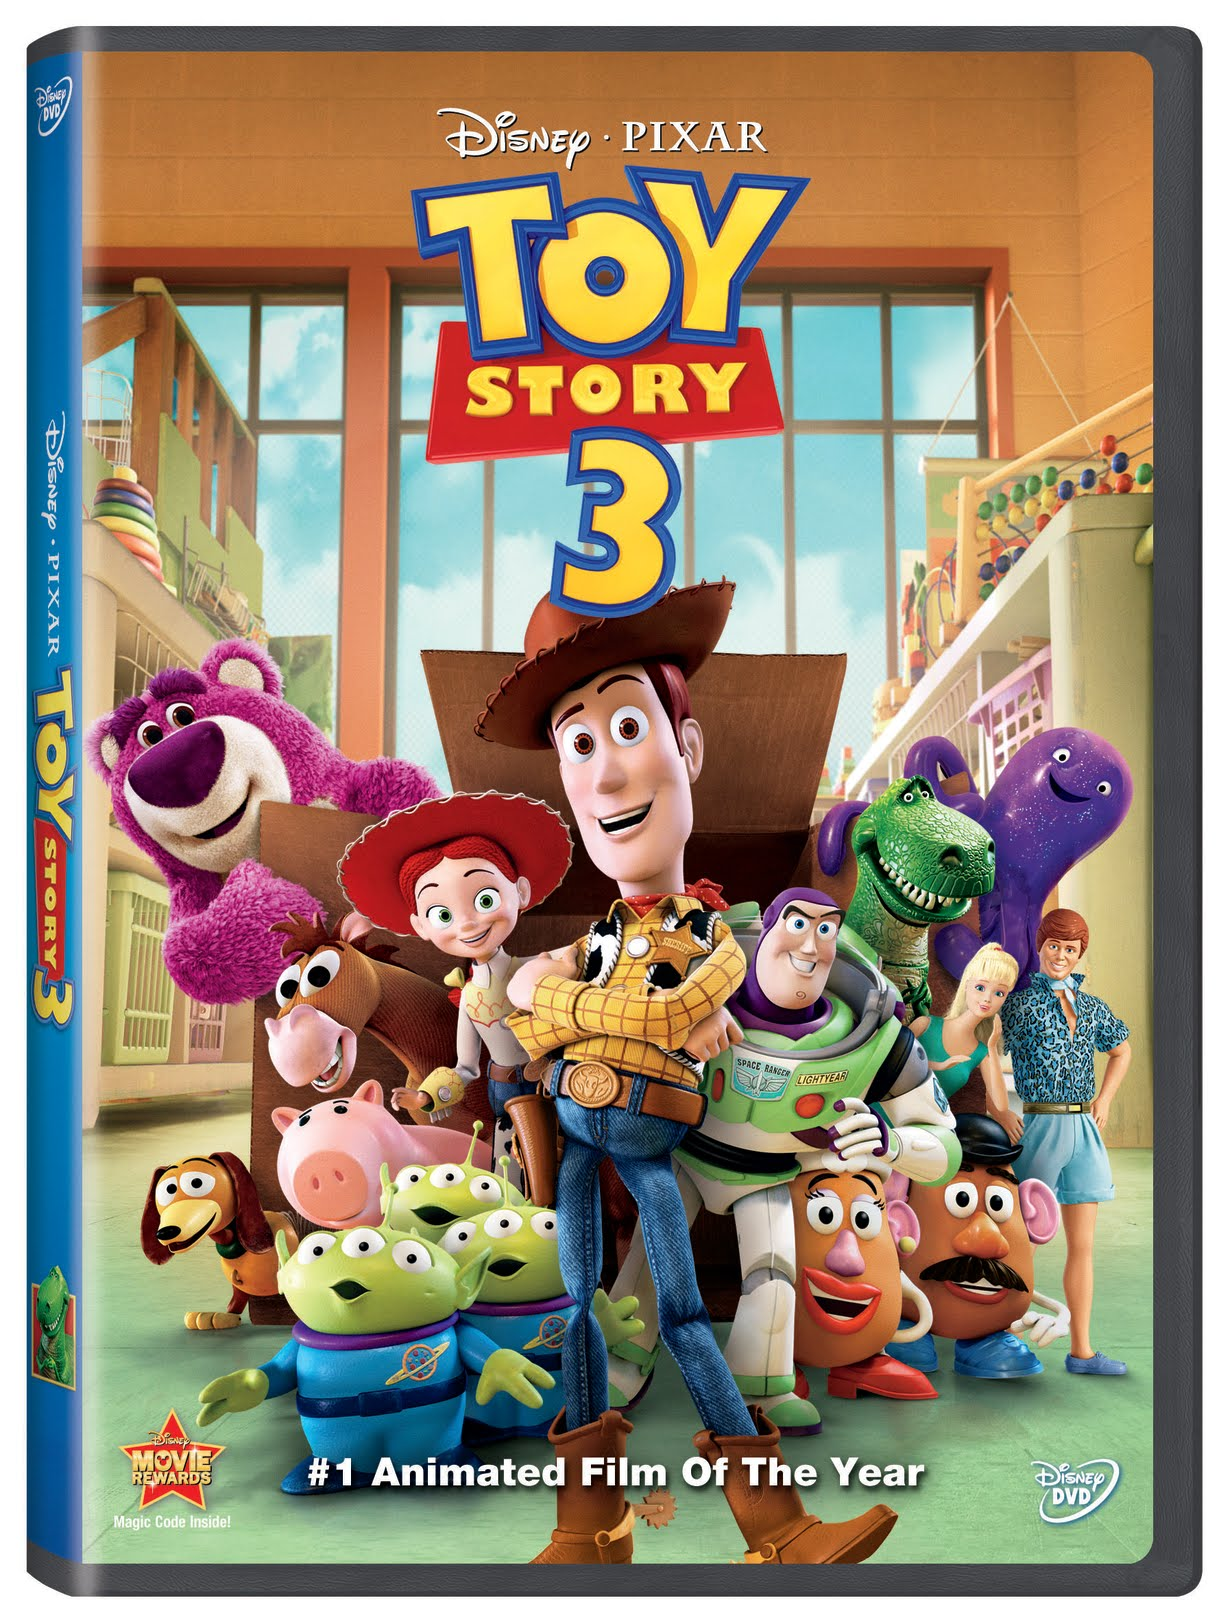 Toy Story Cracked Magazine: My Power Is Beyond Your Understanding: Toy Story 3 On DVD